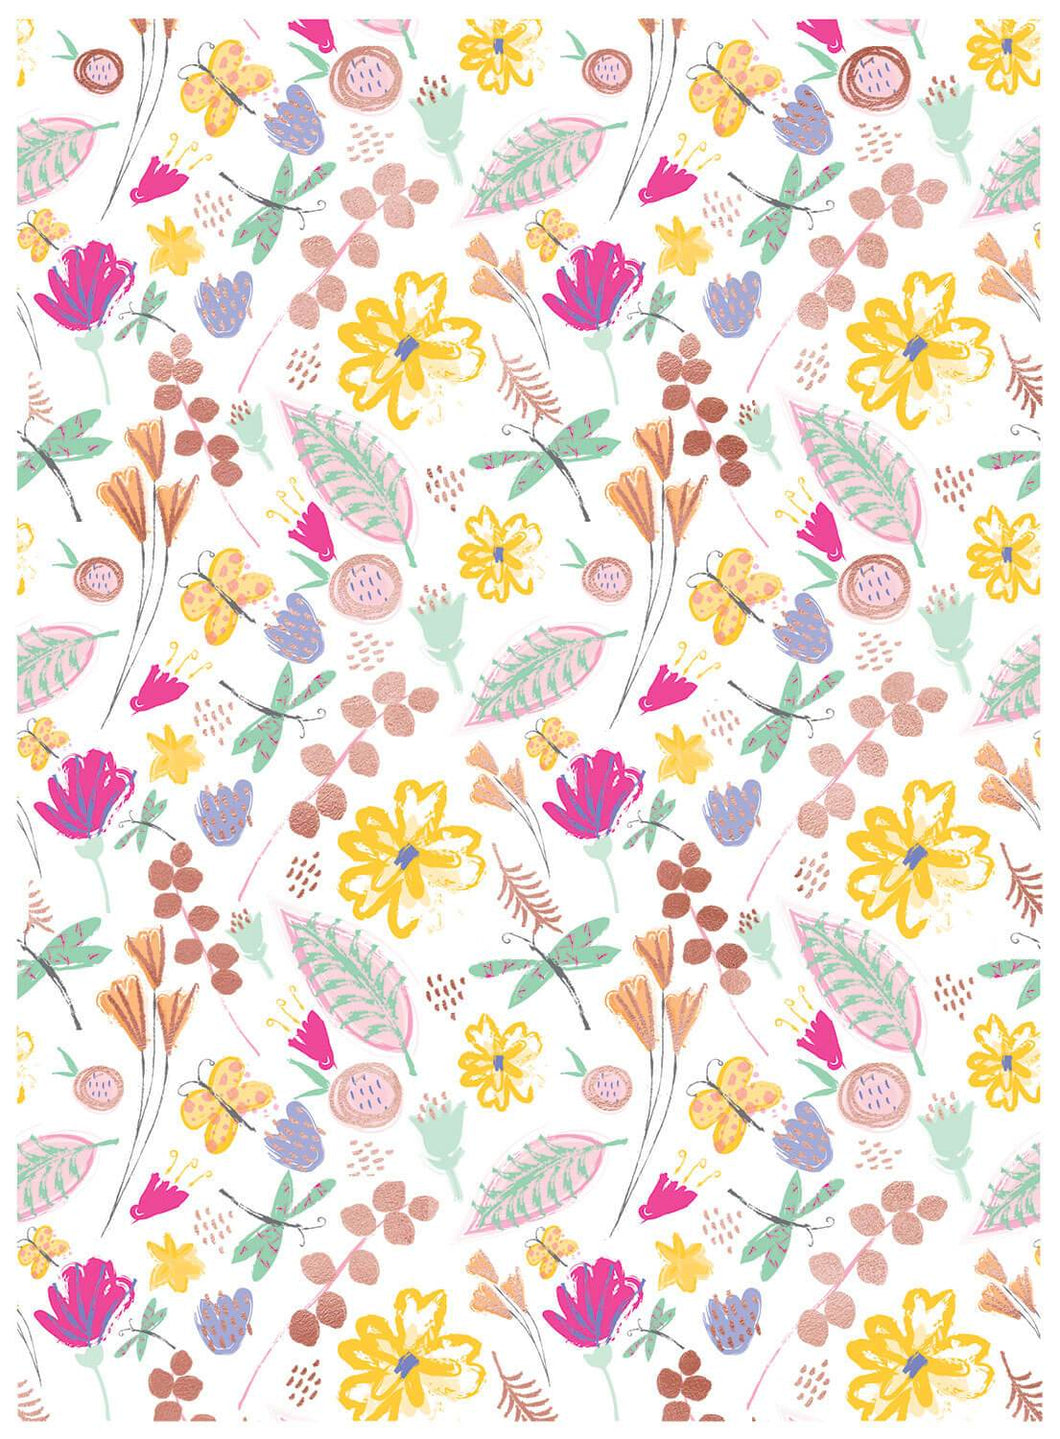 Bright Floral Birthday Wishes Wrapping Paper